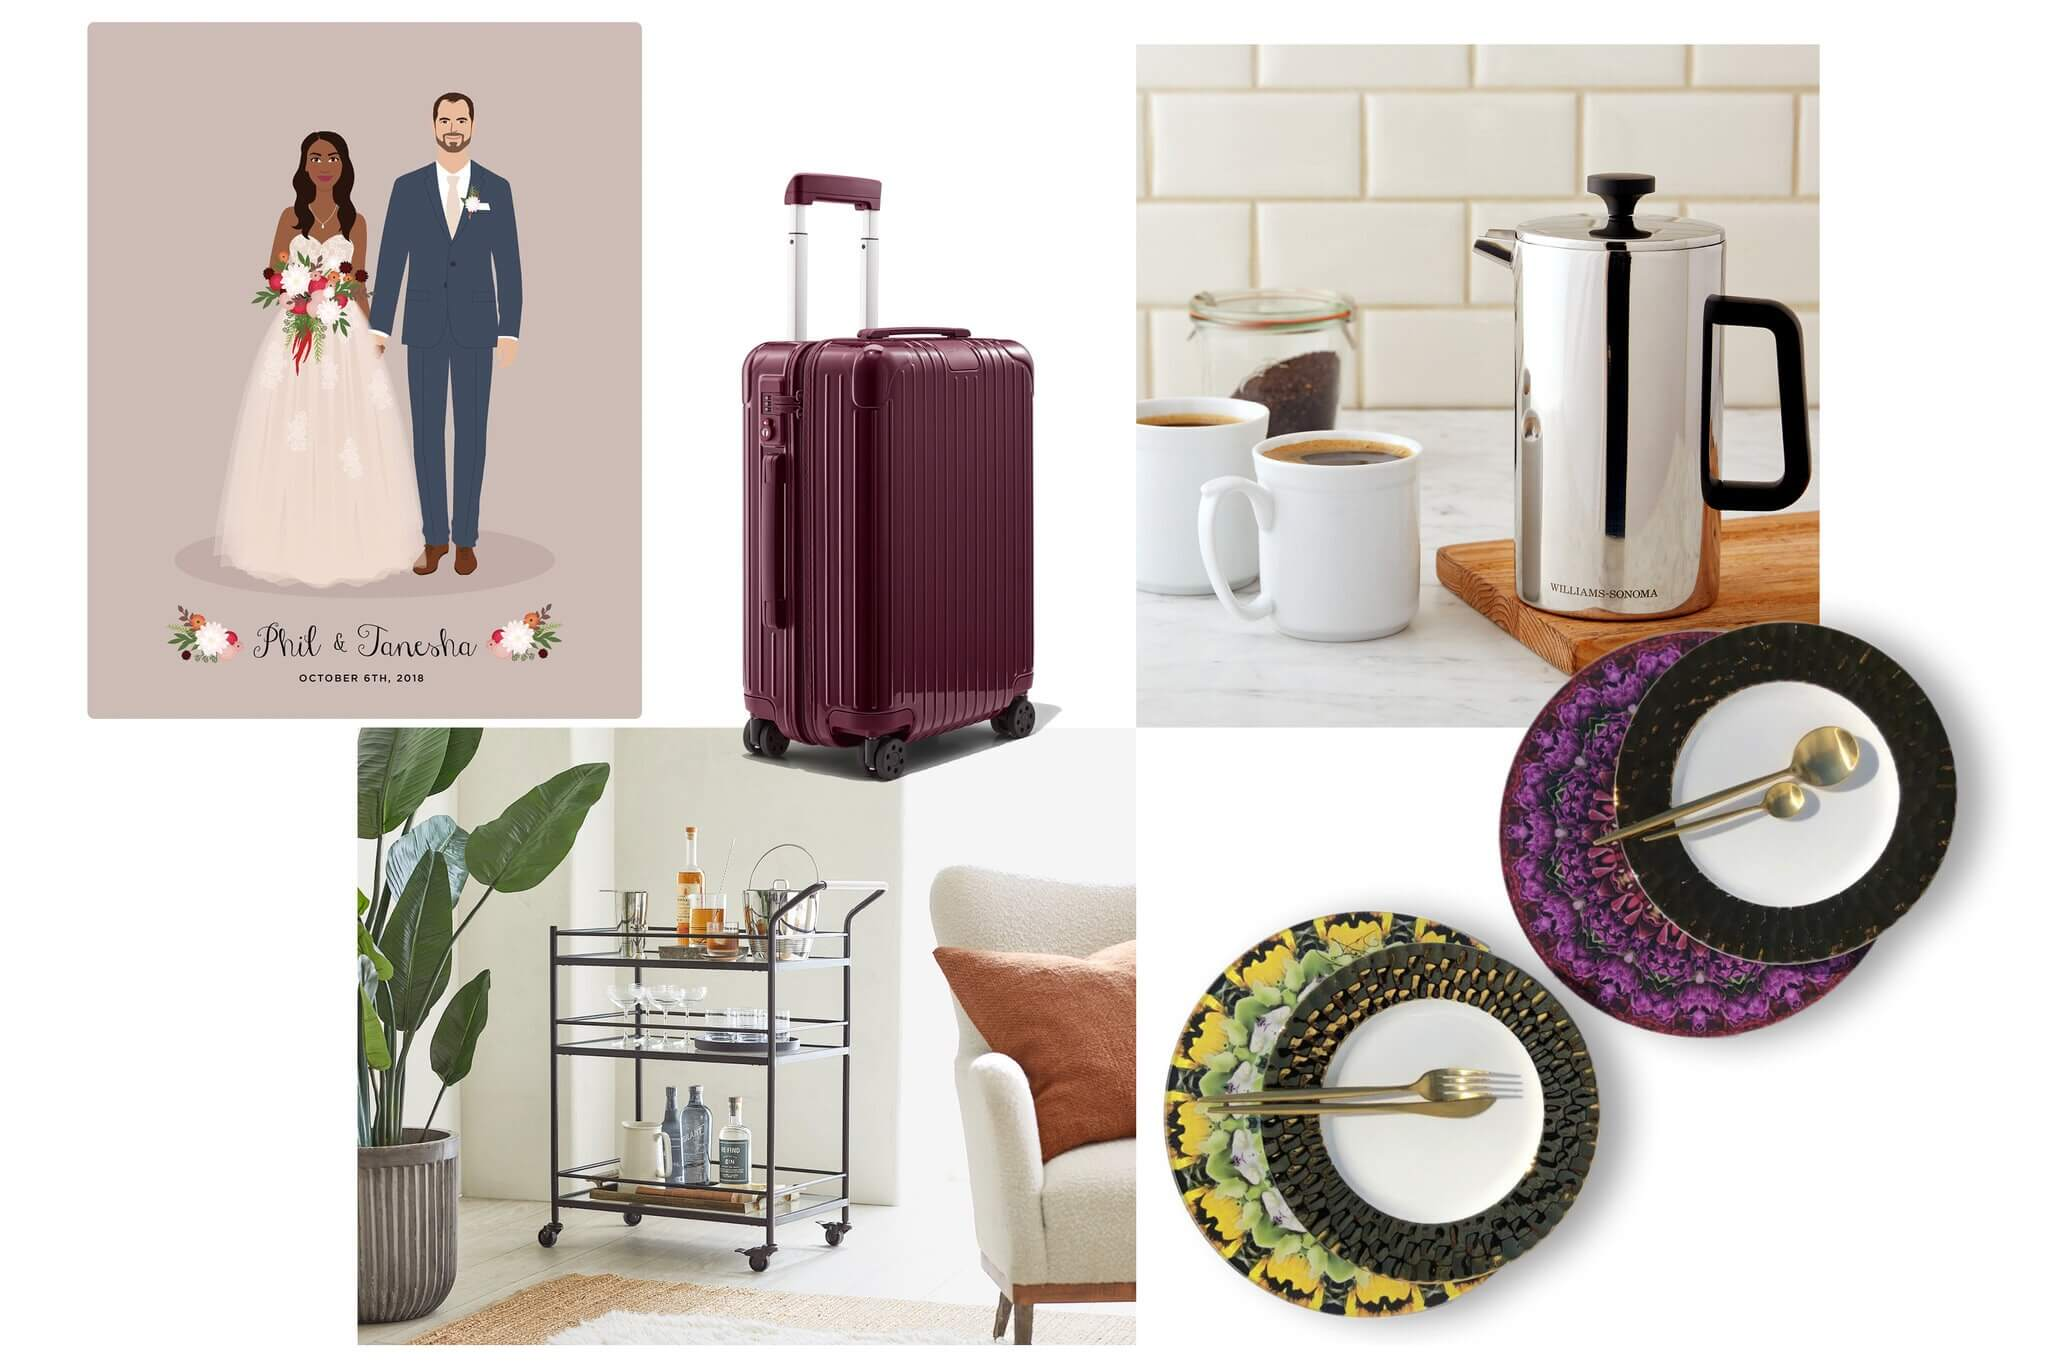 Wedding Presents That Will Turn Any House Into a Home